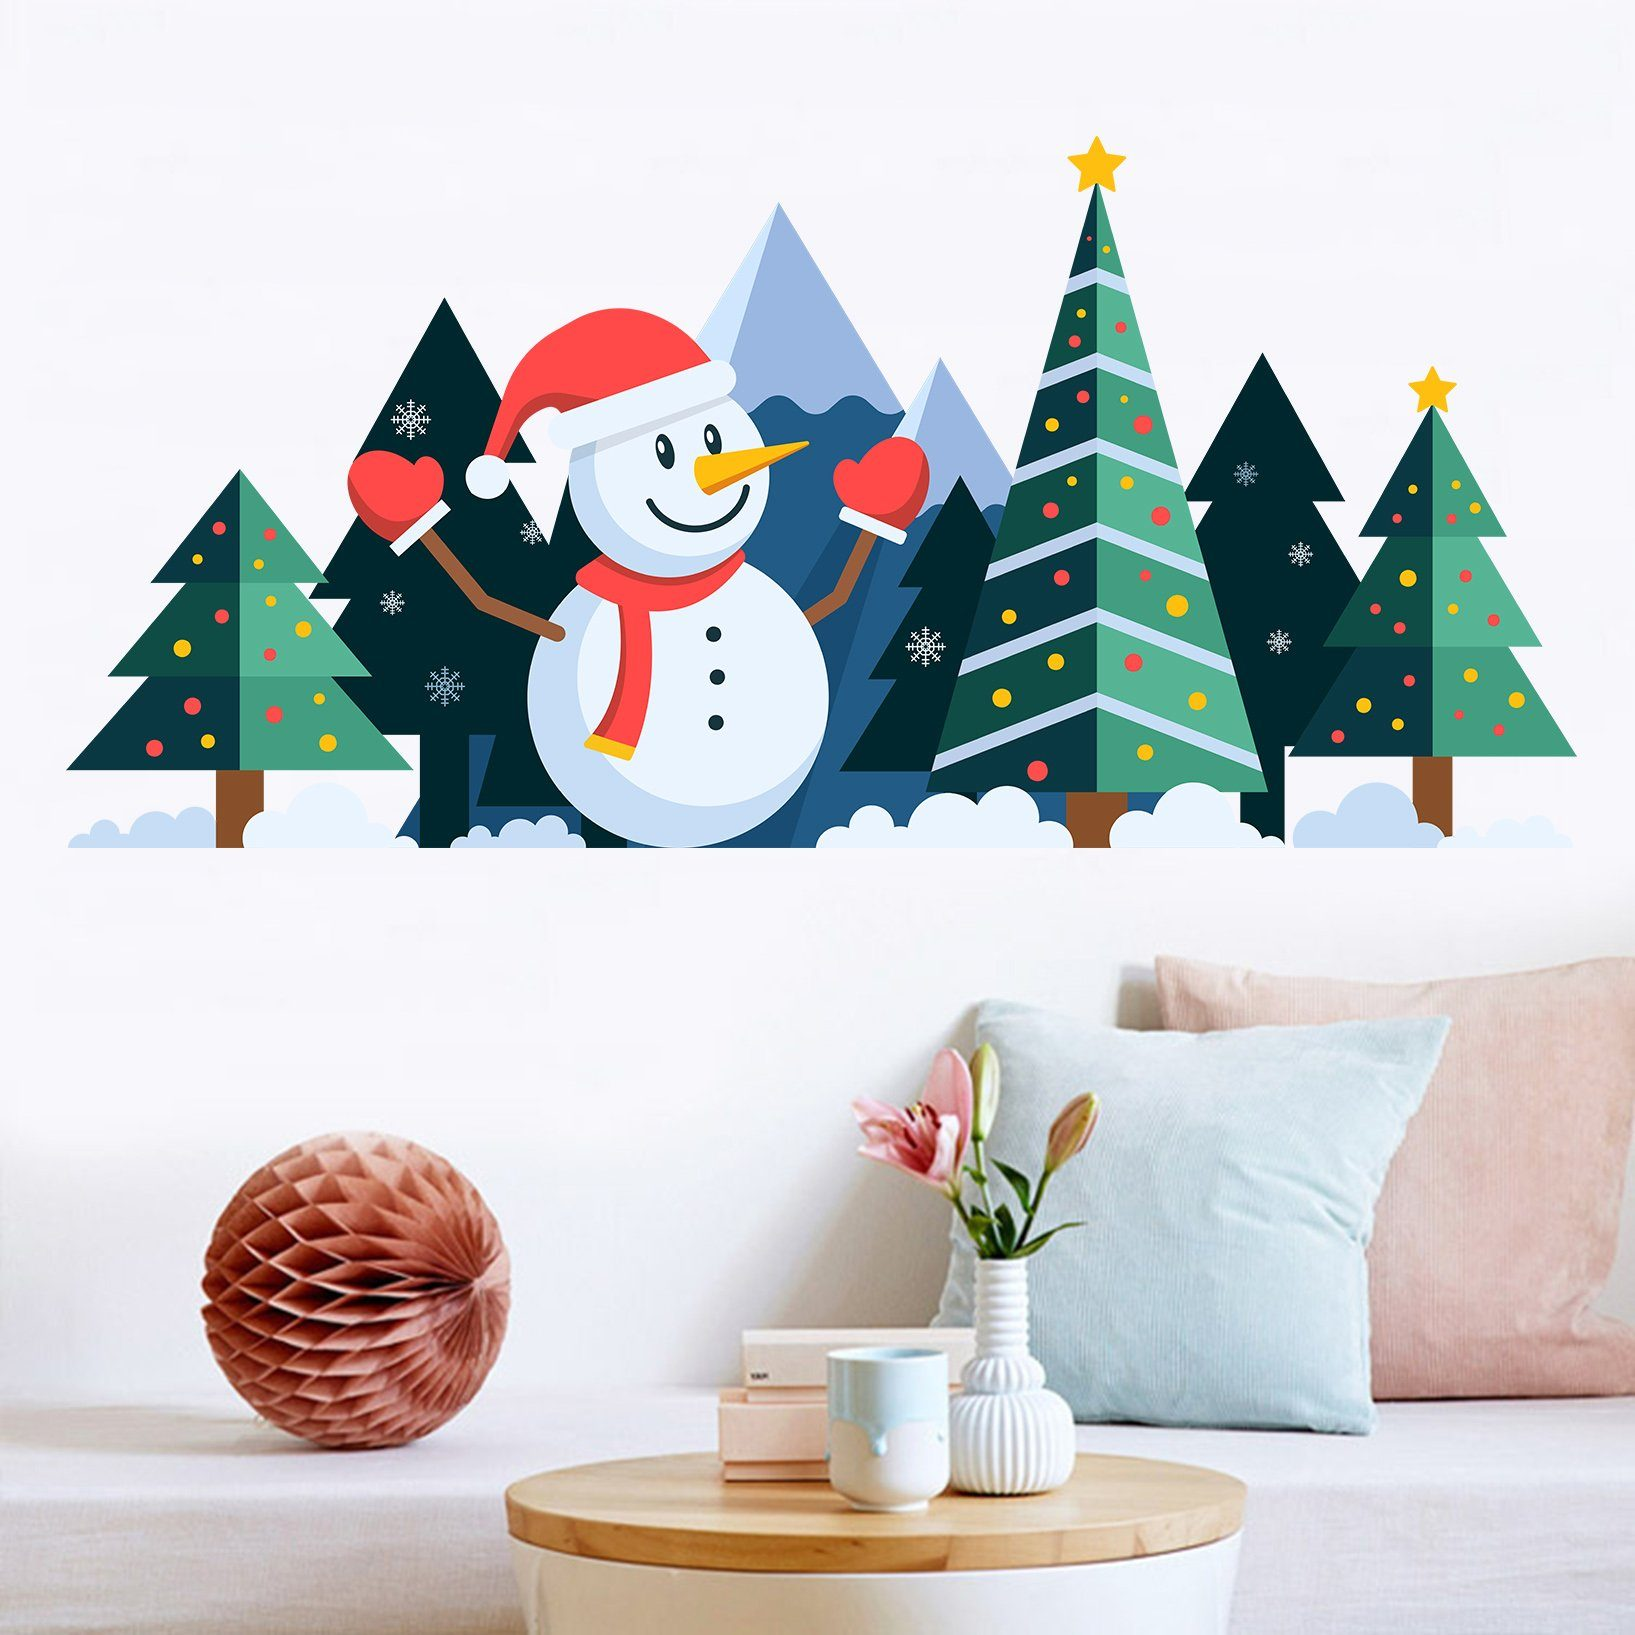 3D Christmas Tree Colored Dots 19 Wall Stickers